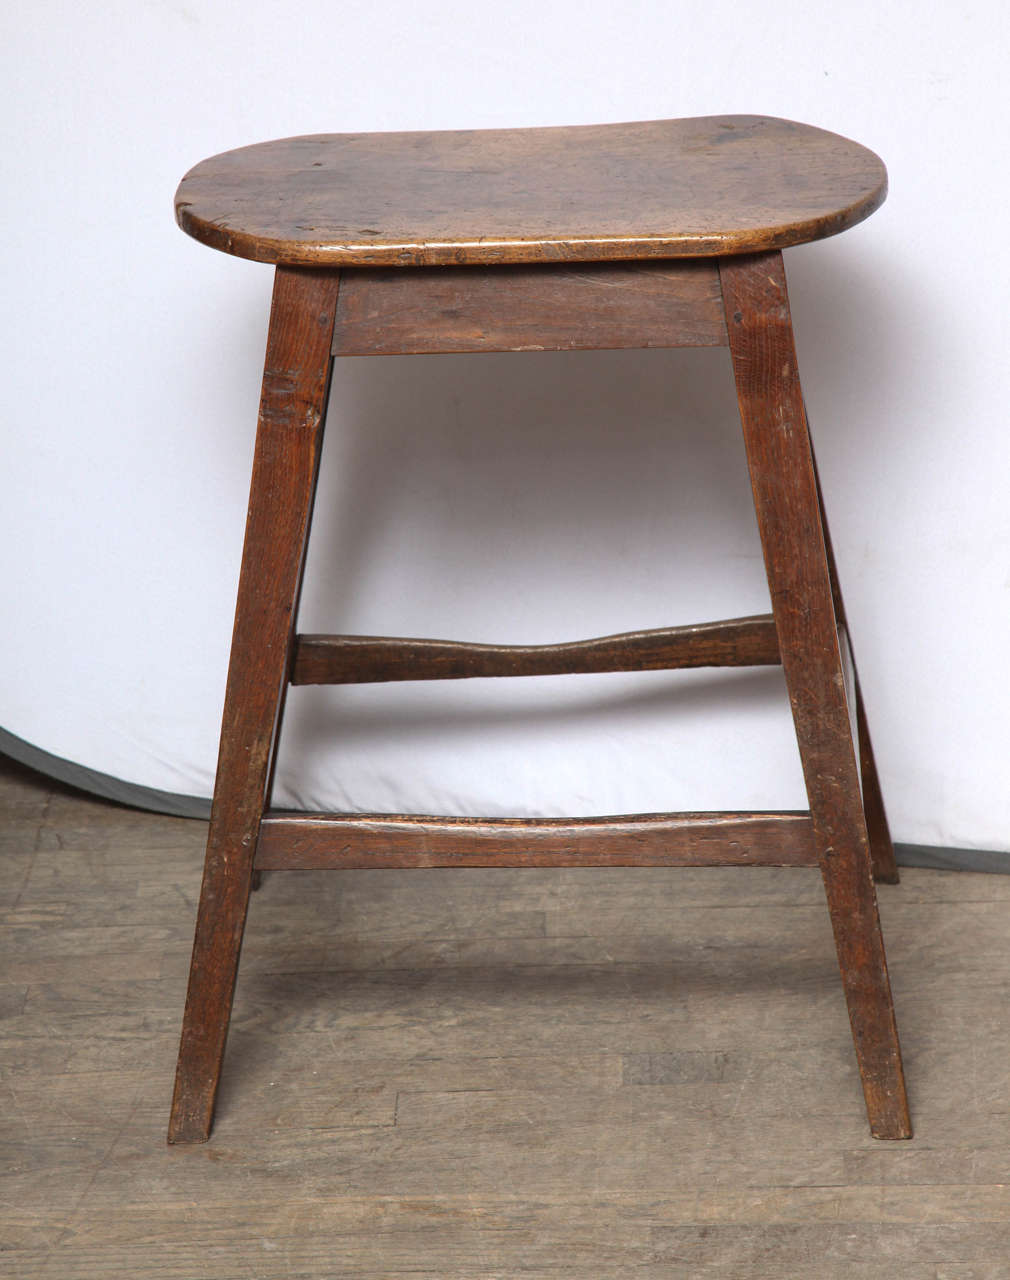 English Unusually Large Oval Kitchen Stool For Sale